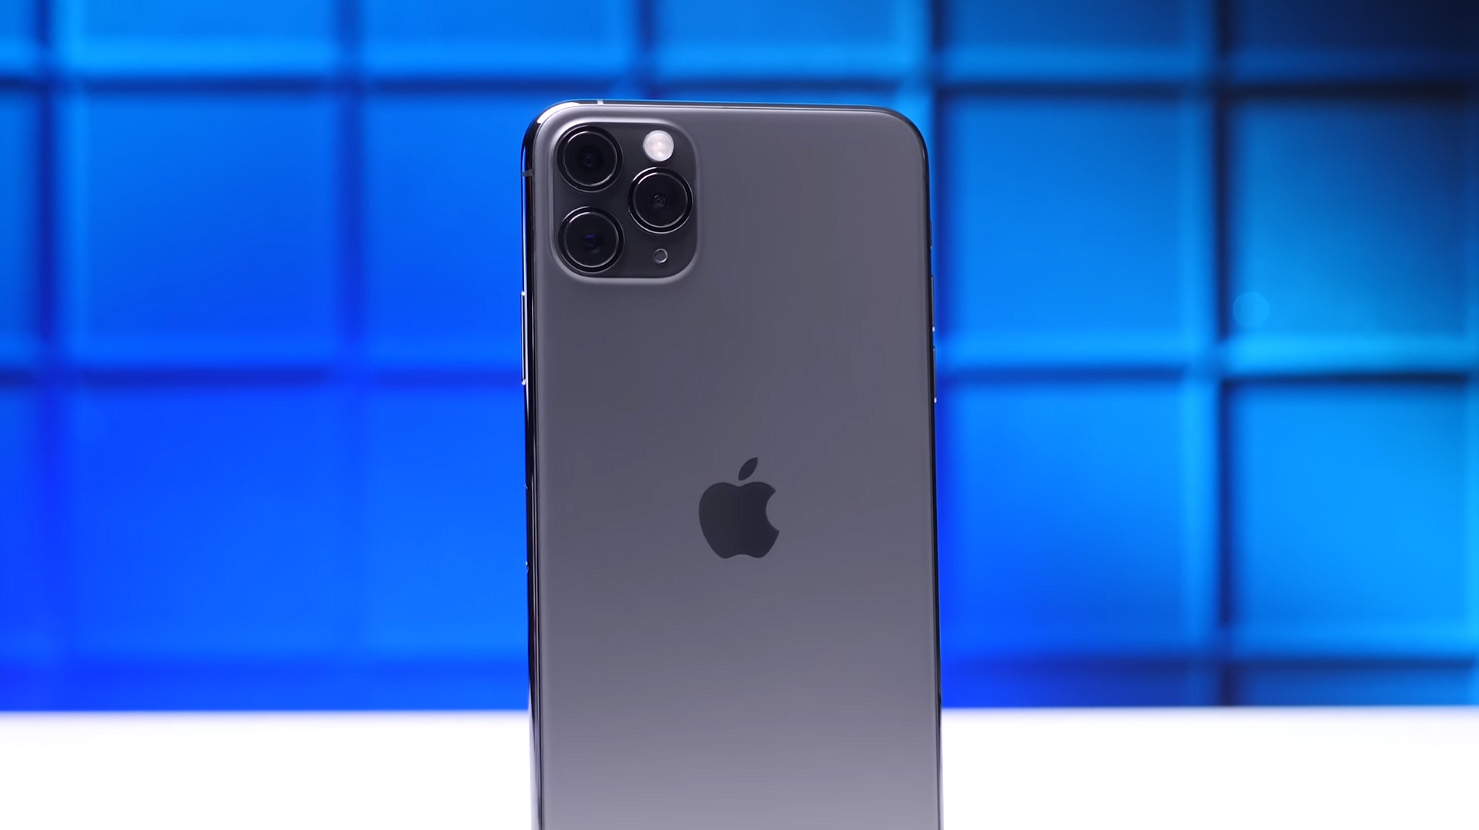 iPhone 11 Pro Max vs Galaxy Note 10+ Battery Test